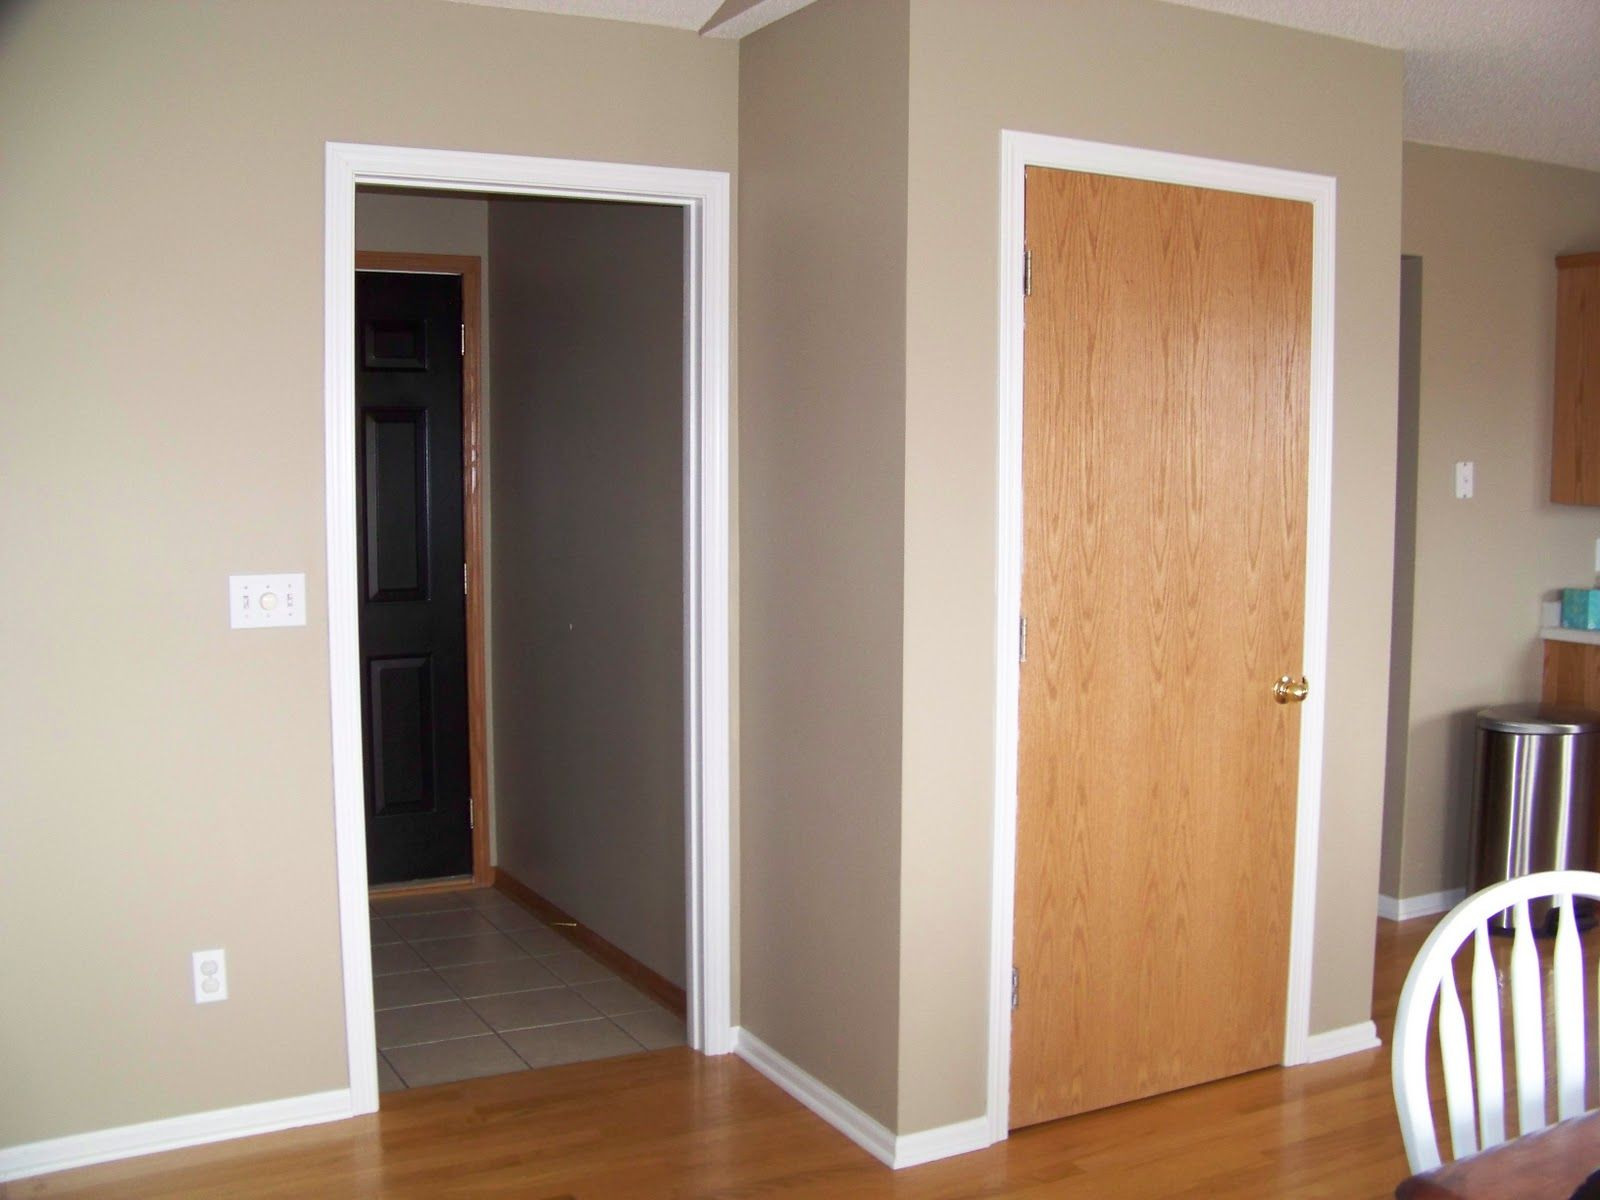 Amazing White Interior Doors With Oak Trim   In Just A House Or A Building,  Interior Doors Are Accustomed To Divide One Room.